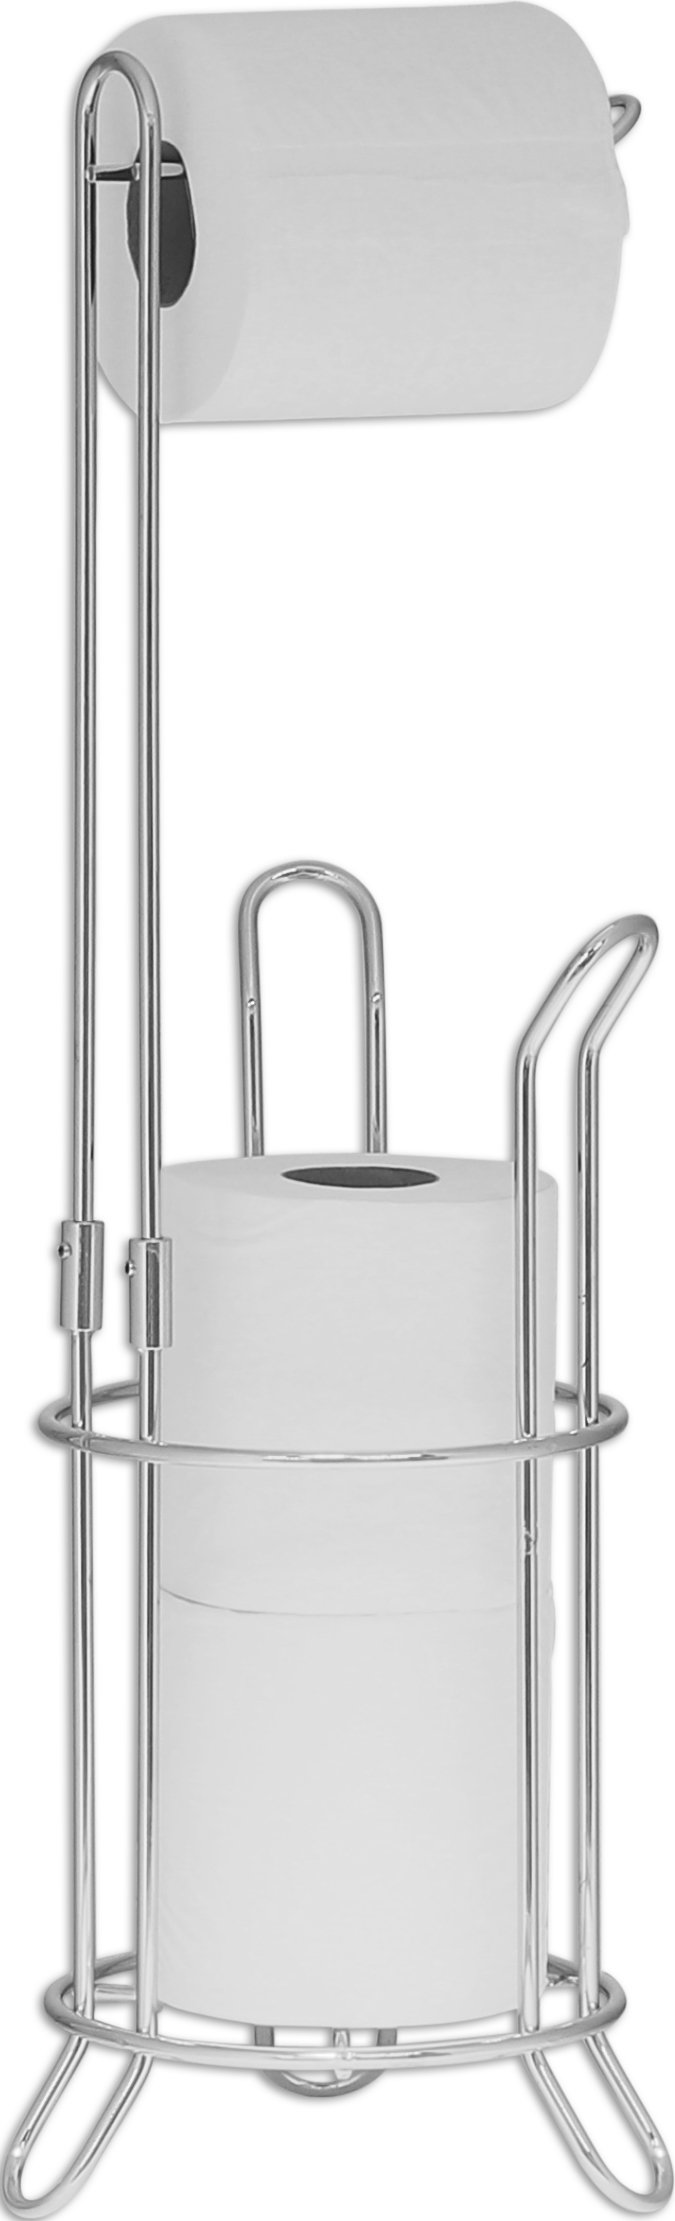 SImpleHouseware Bathroom Toilet Tissue Paper Roll Storage Holder Stand, Chrome Finish by Simple Houseware